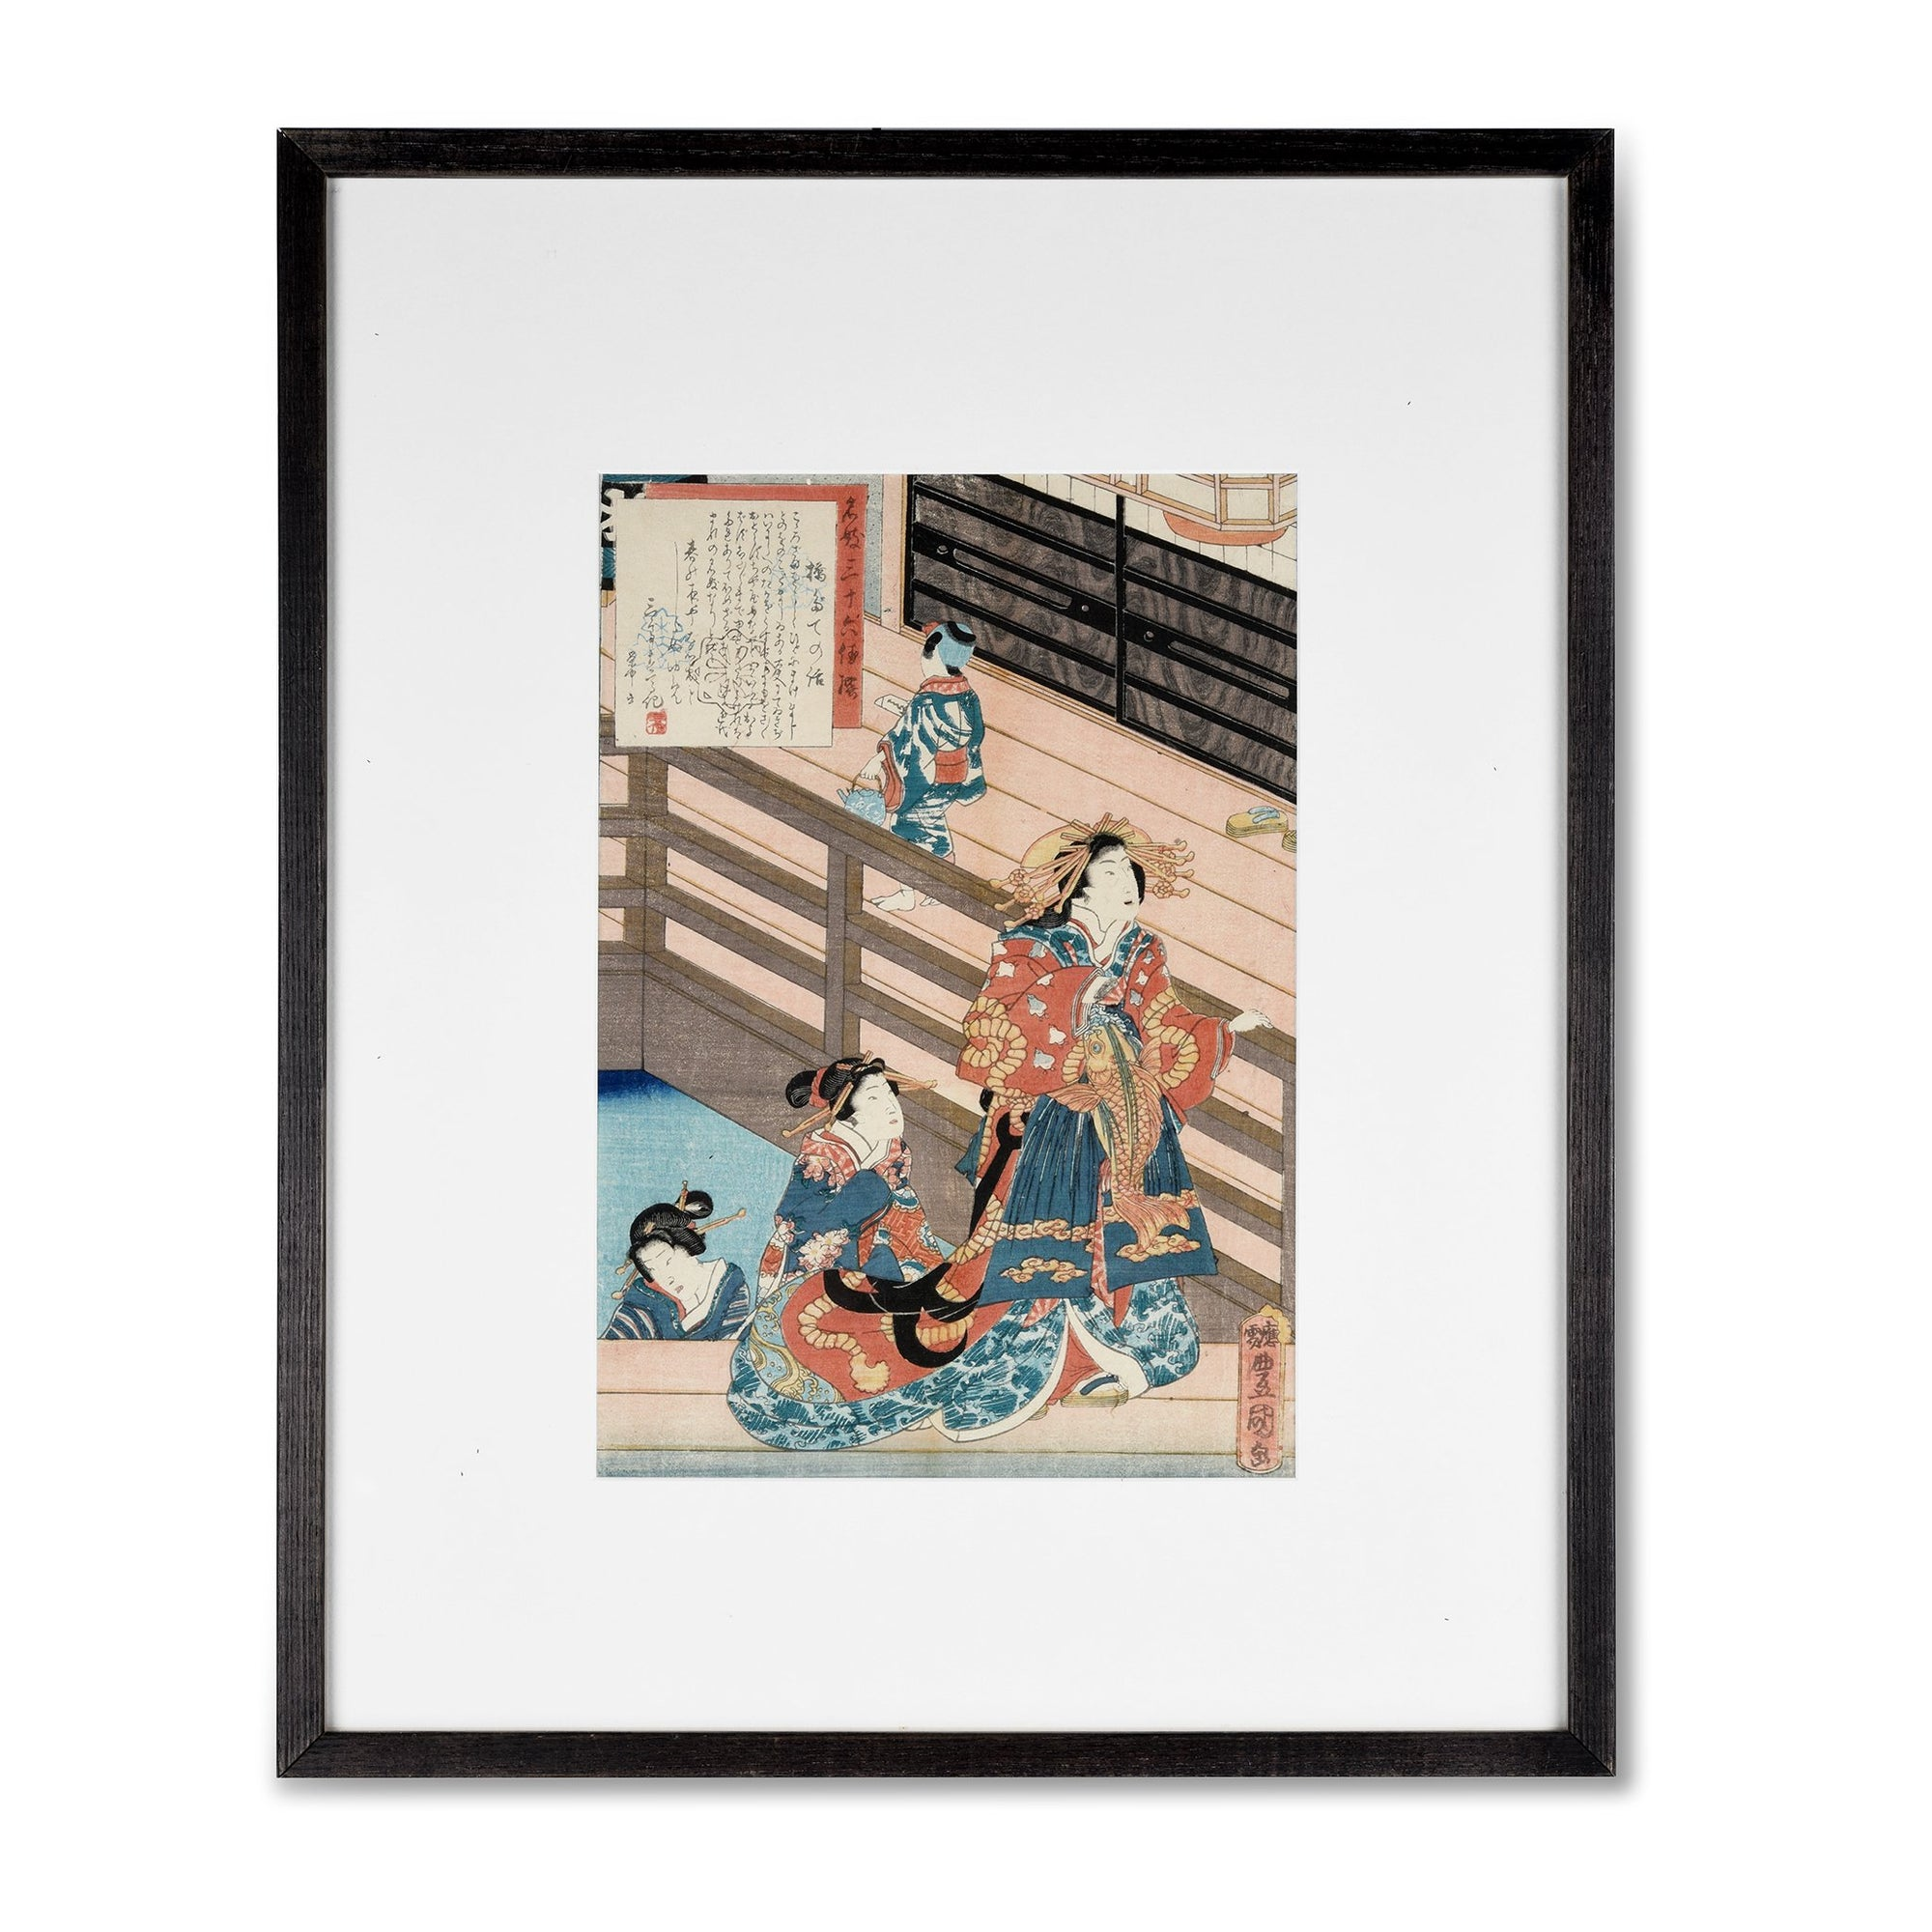 Framed Japanese Woodblock Print of Courtesans by Hashidate - Ca 1860 | Indigo Oriental Antiques